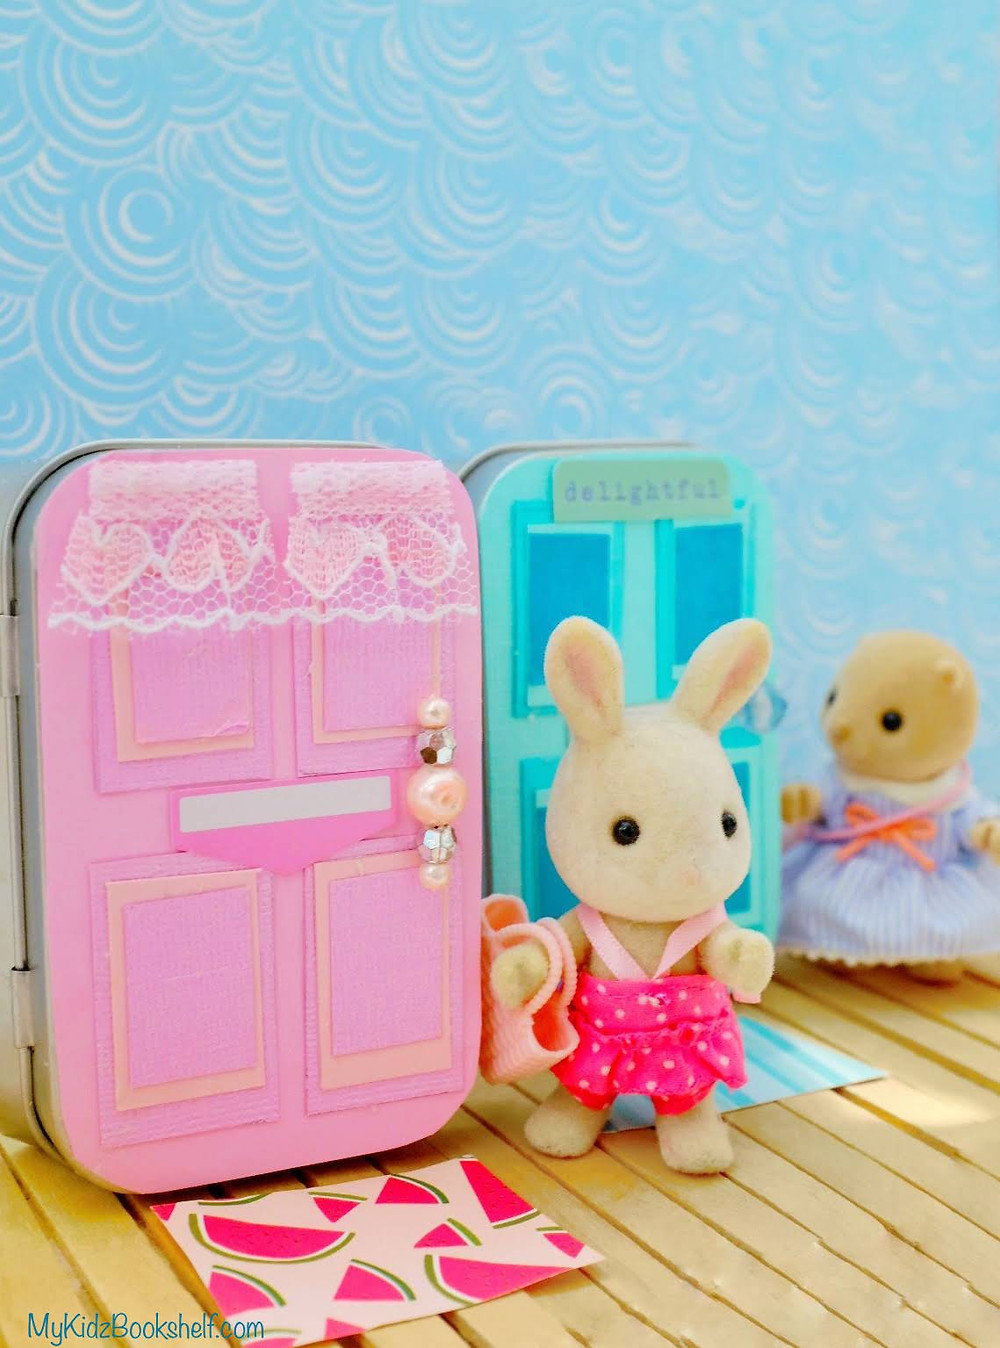 DIY - Make Your Own A-Door-Able Altoid Tin Craft for Kids of All Ages! Calico Critter Sylvanian Family bunny and sea otter by pink door